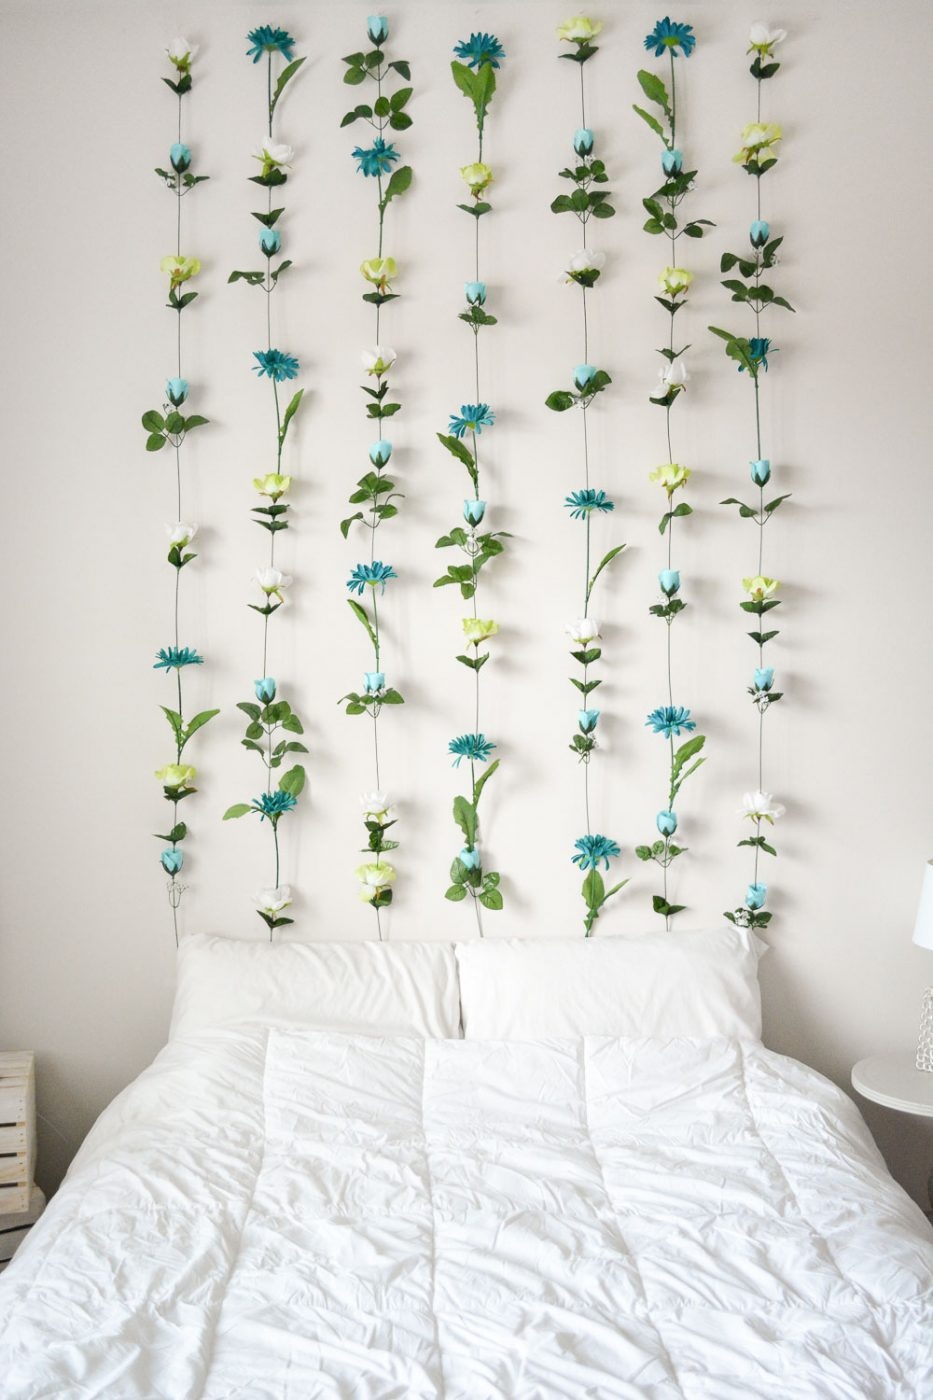 Diy flower wall headboard home decor sweet teal for Bed decoration diy